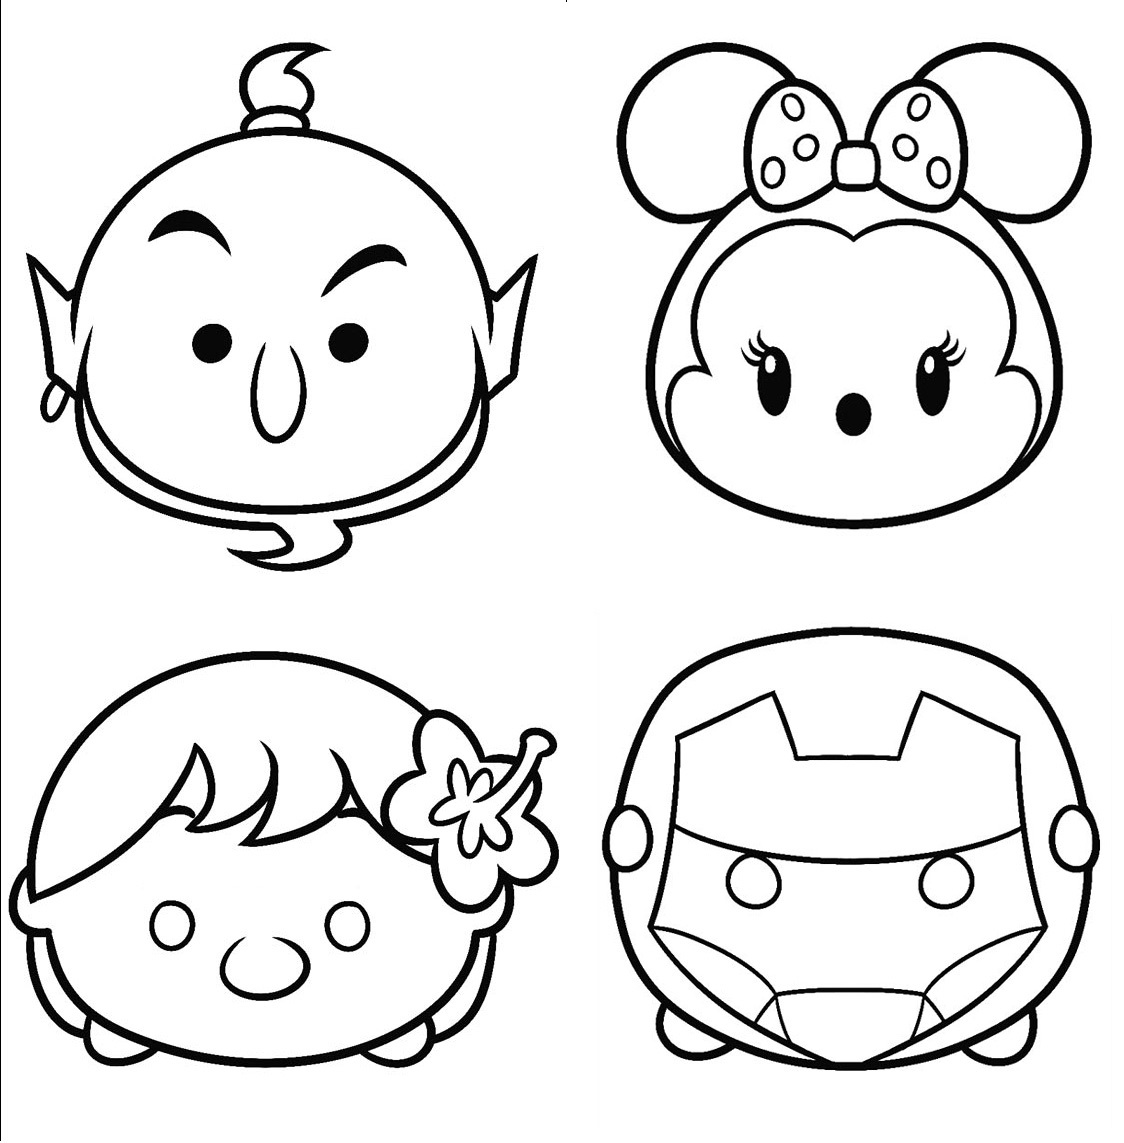 Printable Disney Tsum Tsum Coloring Sheet For Kids